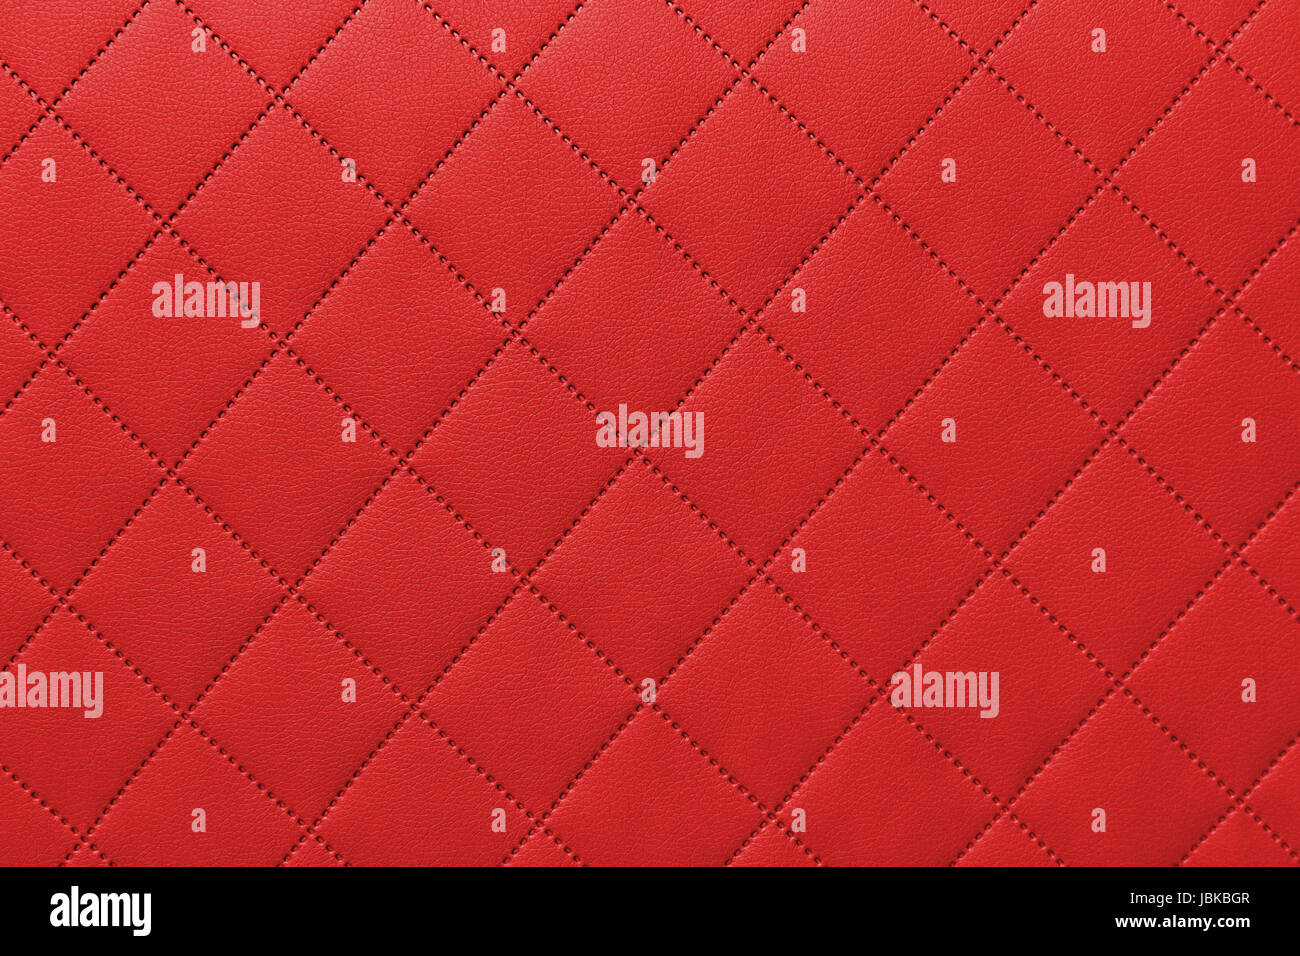 detail of sewn leather, red leather upholstery background pattern - Stock Image